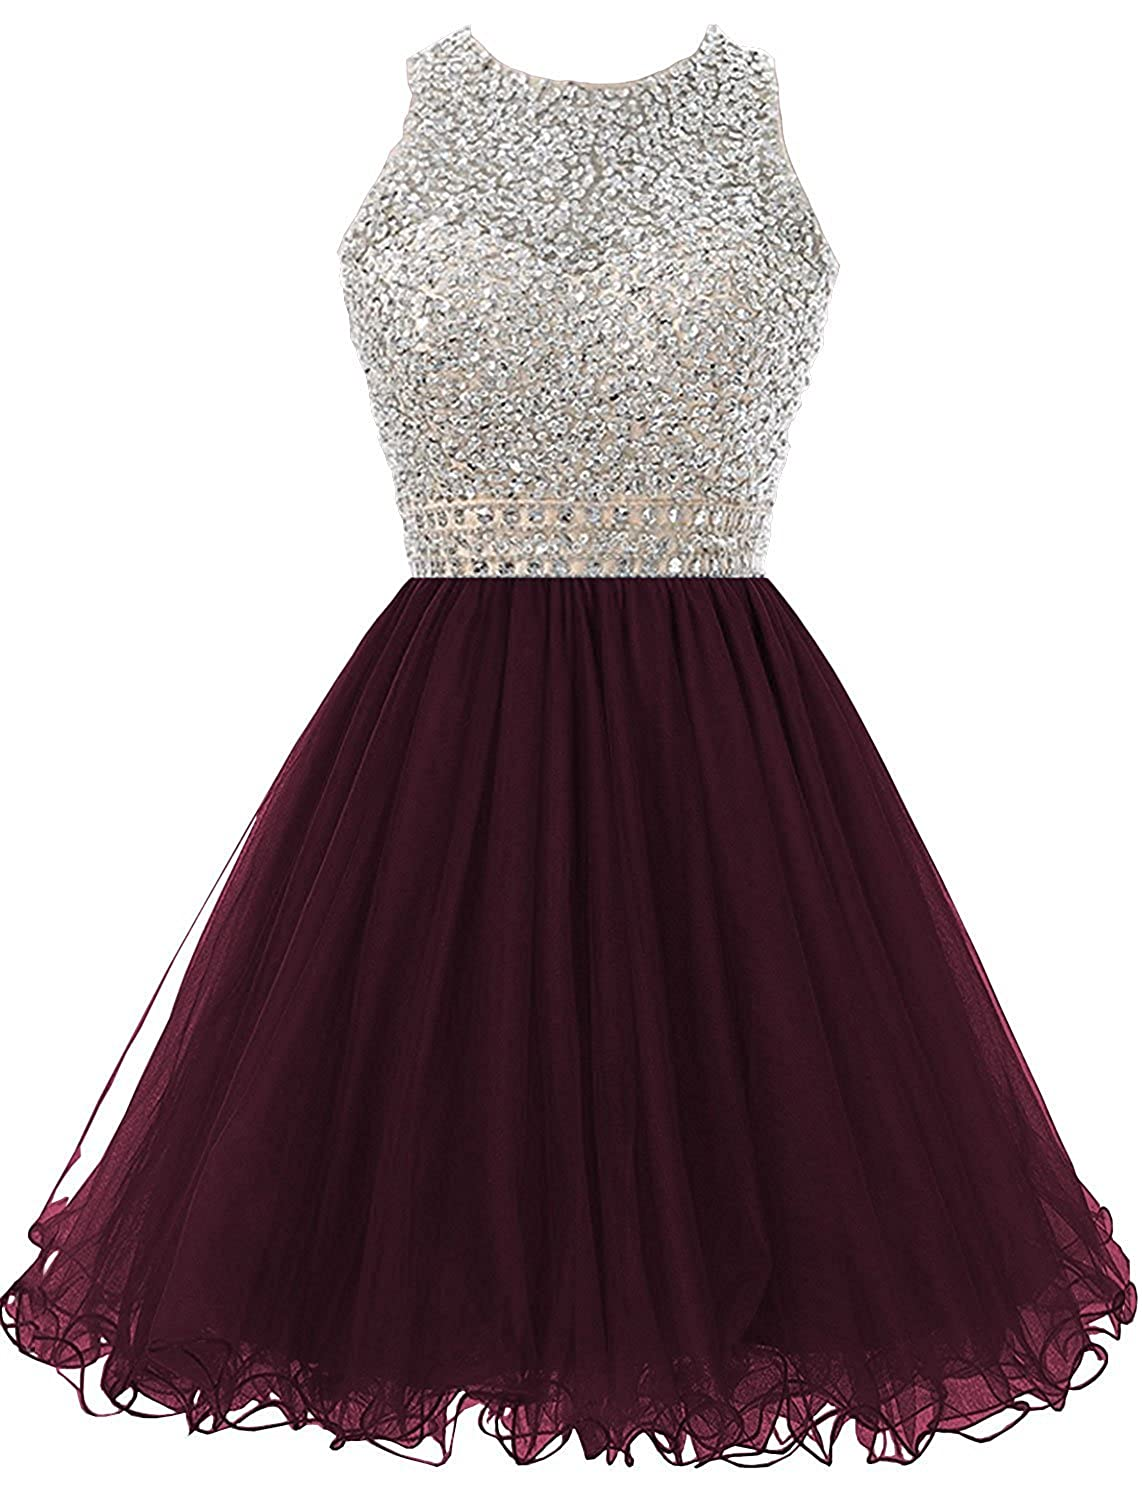 a9c579603f4 Dannifore Beaded Homecoming Dresses for Juniors Sequins Tulle Short Prom  Dress at Amazon Women s Clothing store